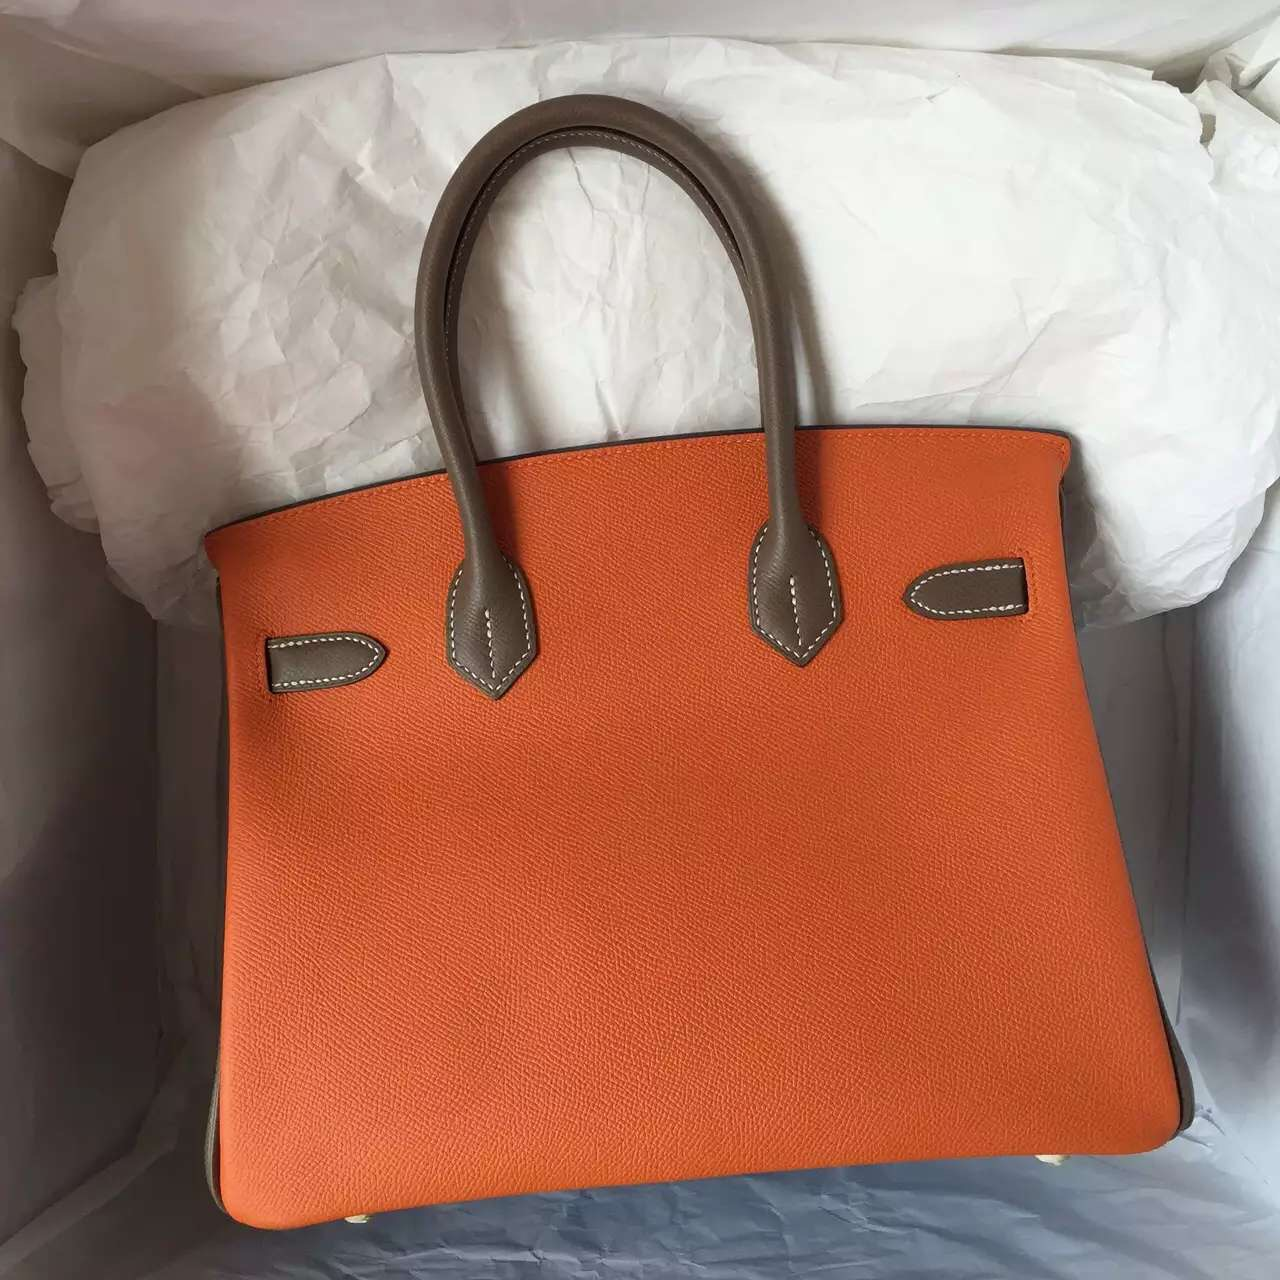 Cheap Hermes Epsom Leather Birkin Bag 30CM in 2T Blue Paradise/Etoupe Grey/Orange Color